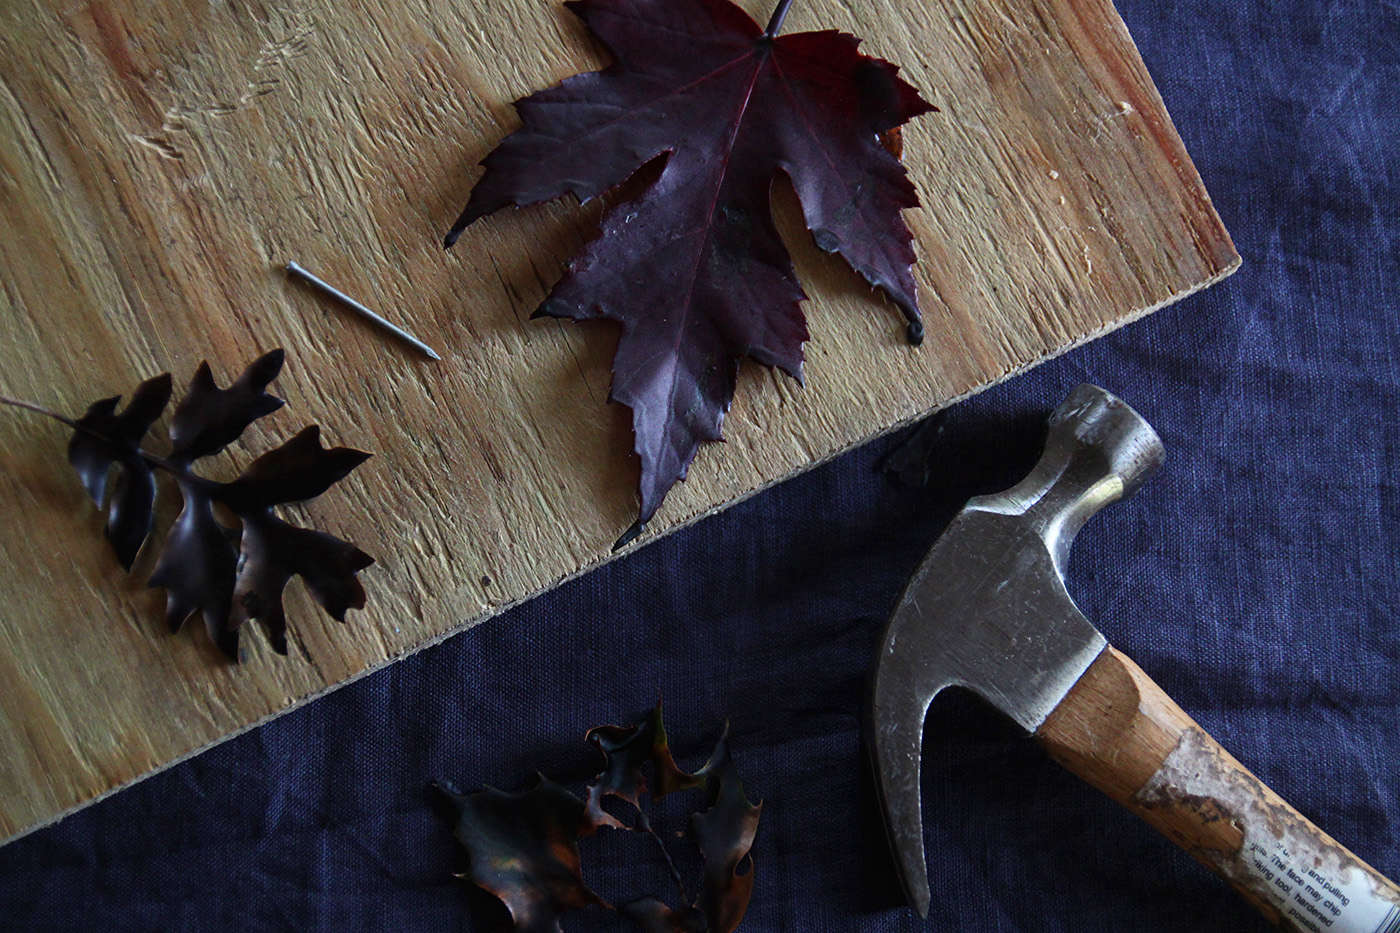 Halloween%20table%20with%20Black%20Leaves%2C%20making%20holes%2C%20by%20Justine%20Hand%20for%20Remodelista.jpg